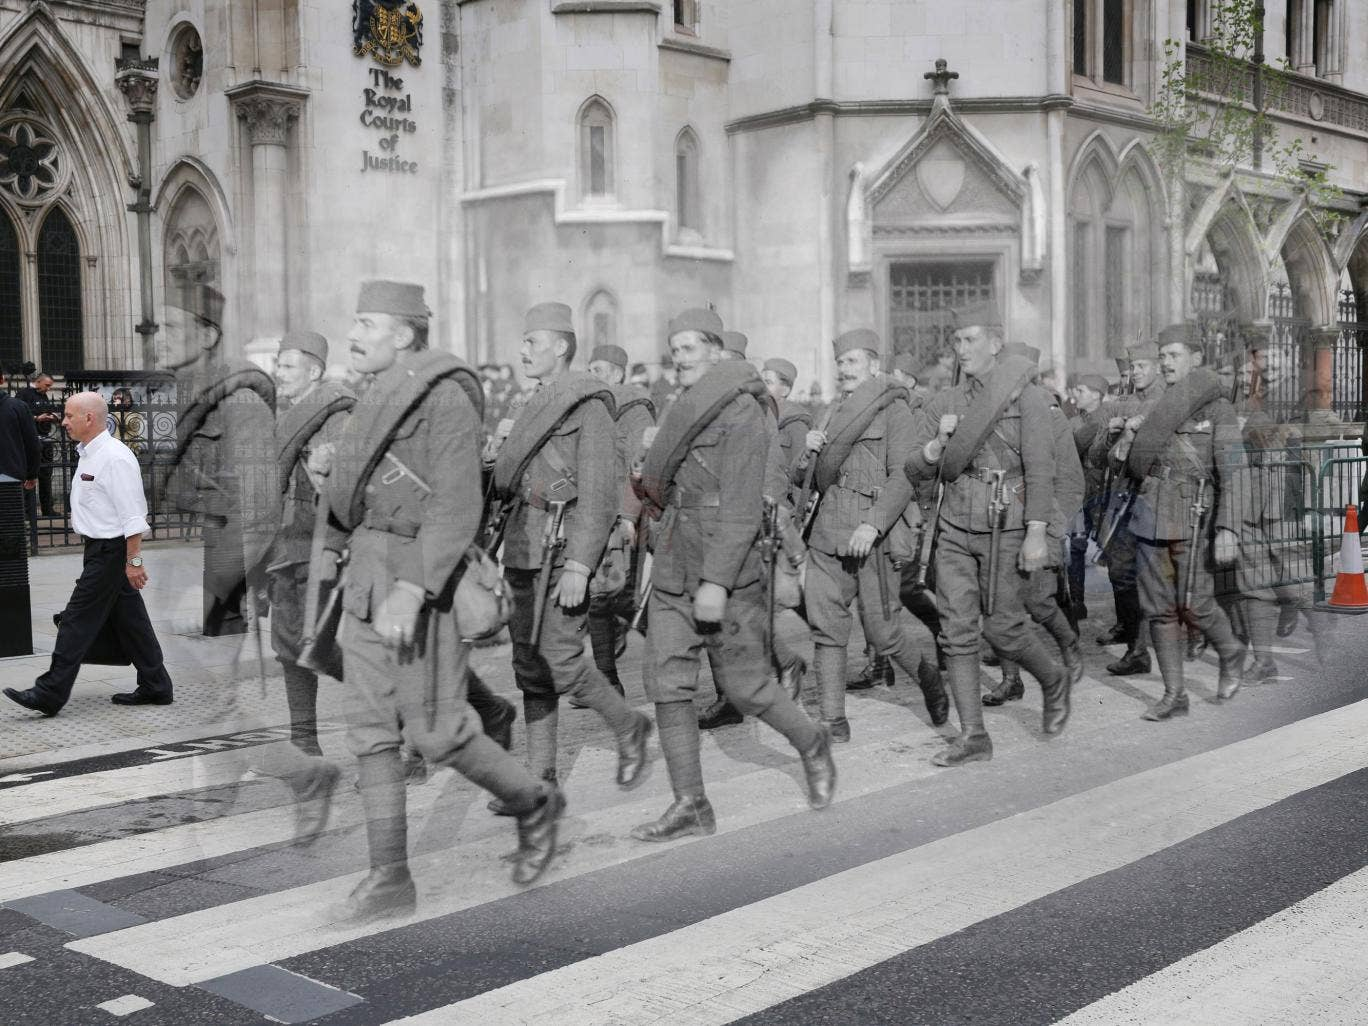 People pass the Royal Courts of Justice next to Serbian soldiers marching in the Lord Mayor's show, London, in the last days of the First World War in November 1918